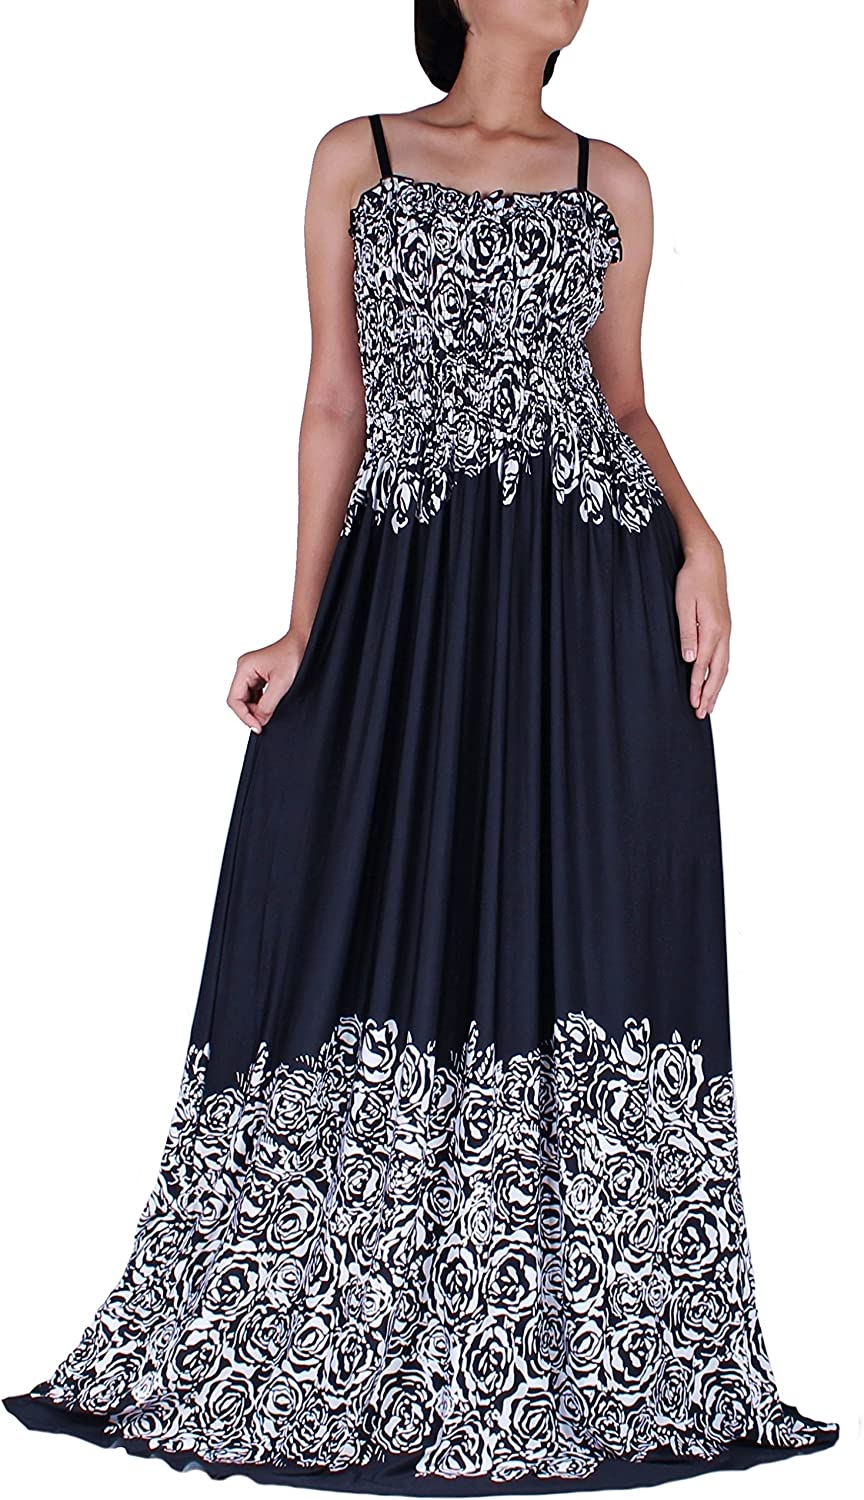 Women Maxi Party B&W Dress Plus Size Casual Evening Dinner Black White Floral